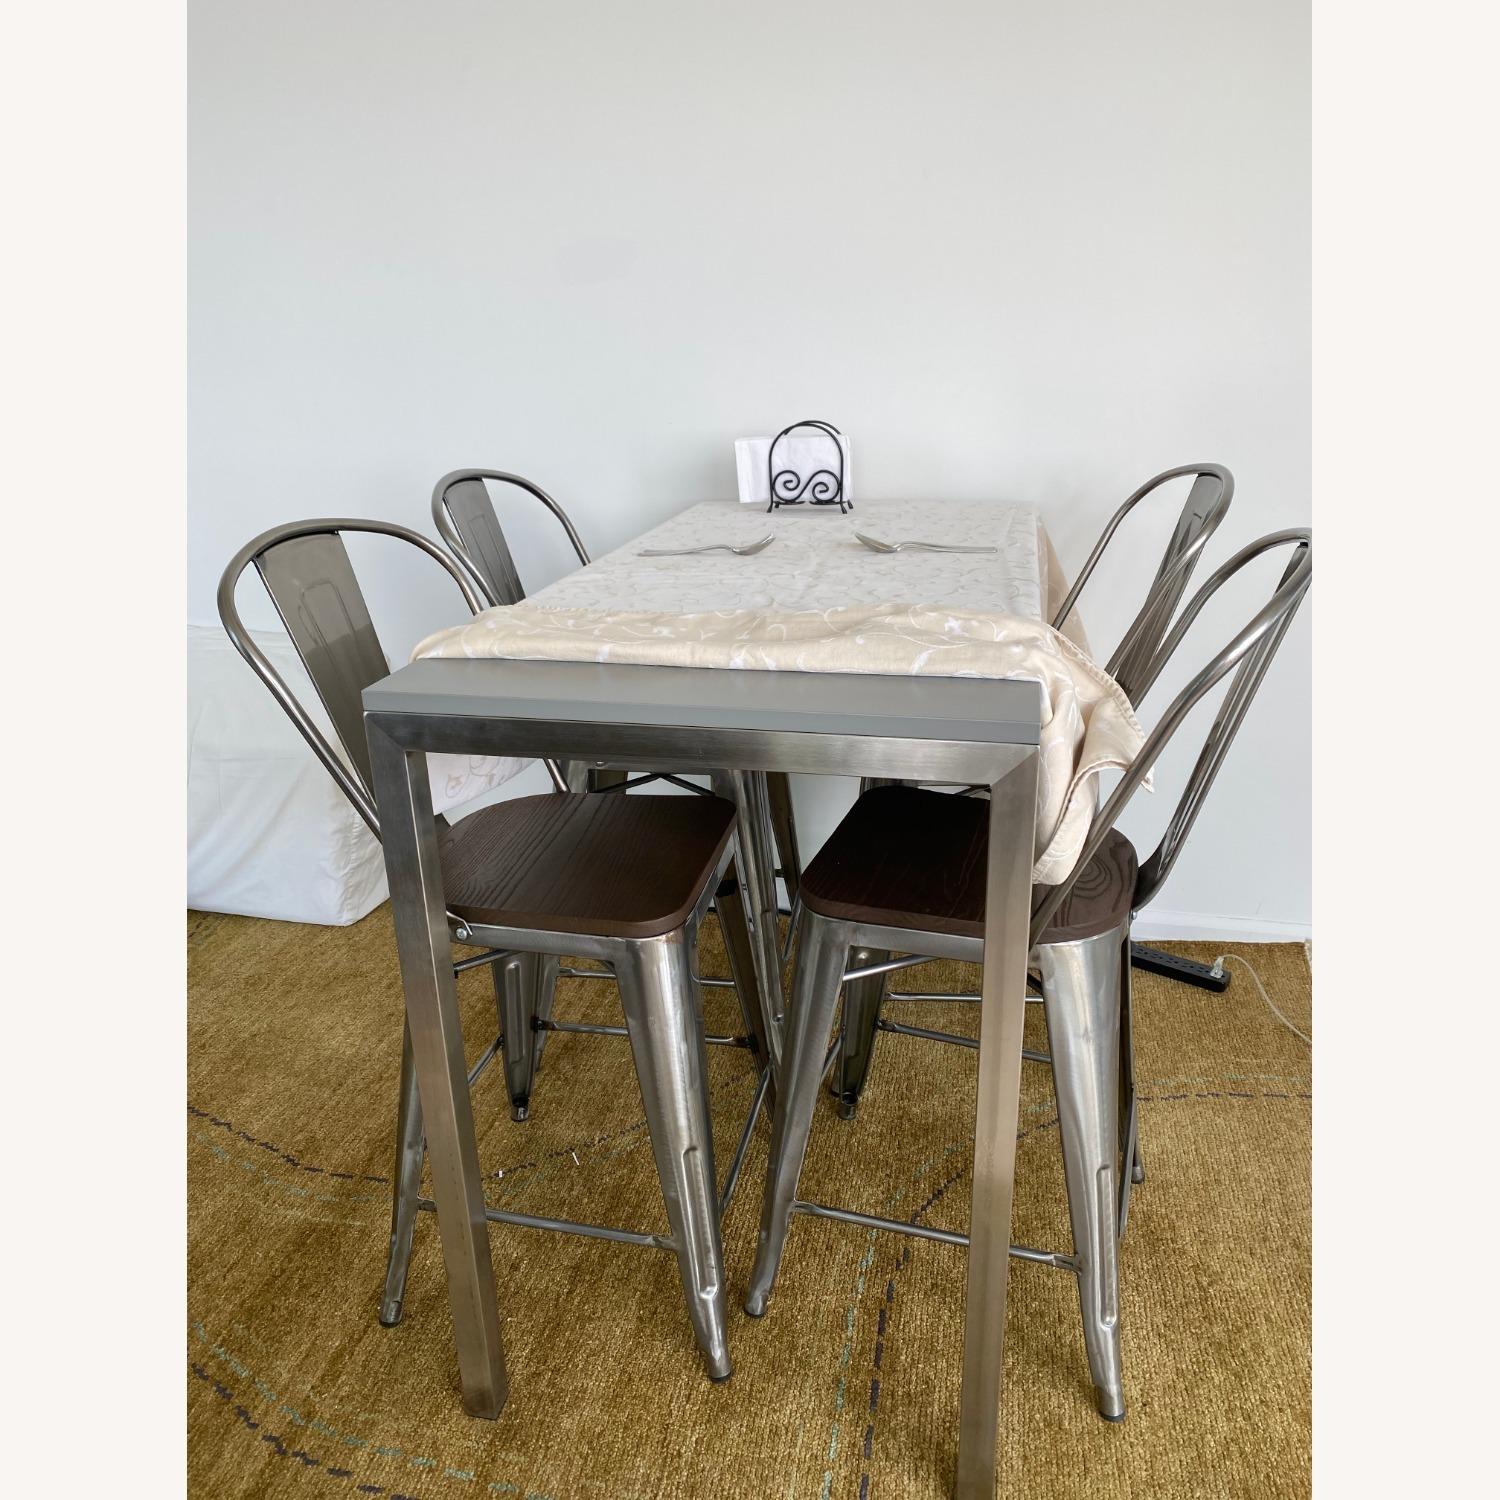 Il Loft Chairs for Counter Table - image-3